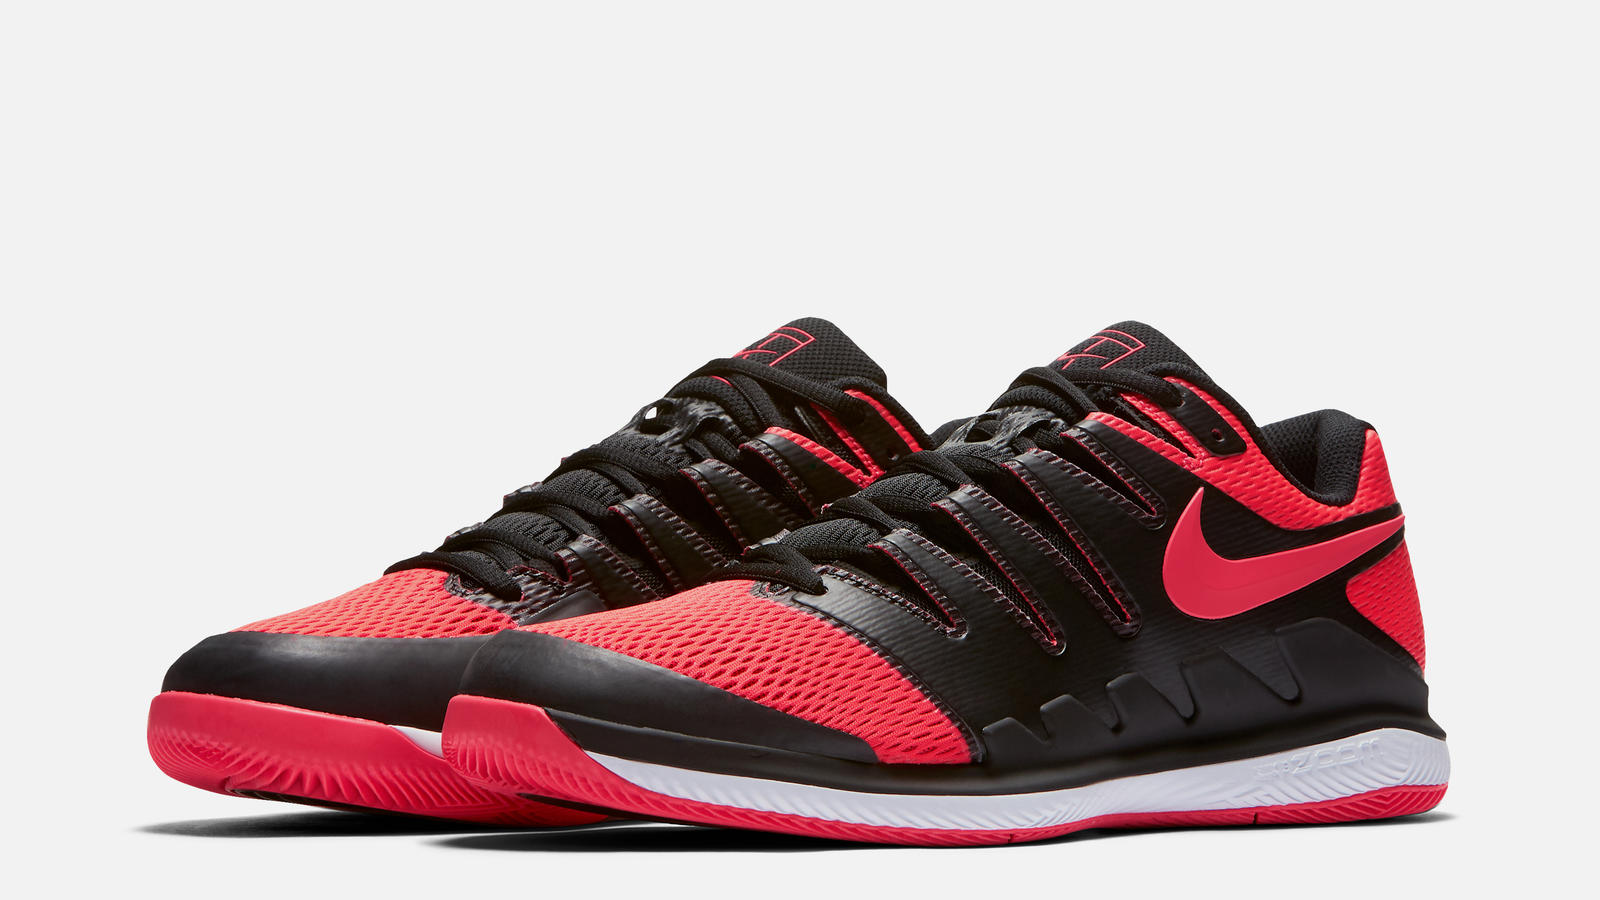 Introducing the NikeCourt Vapor X 2